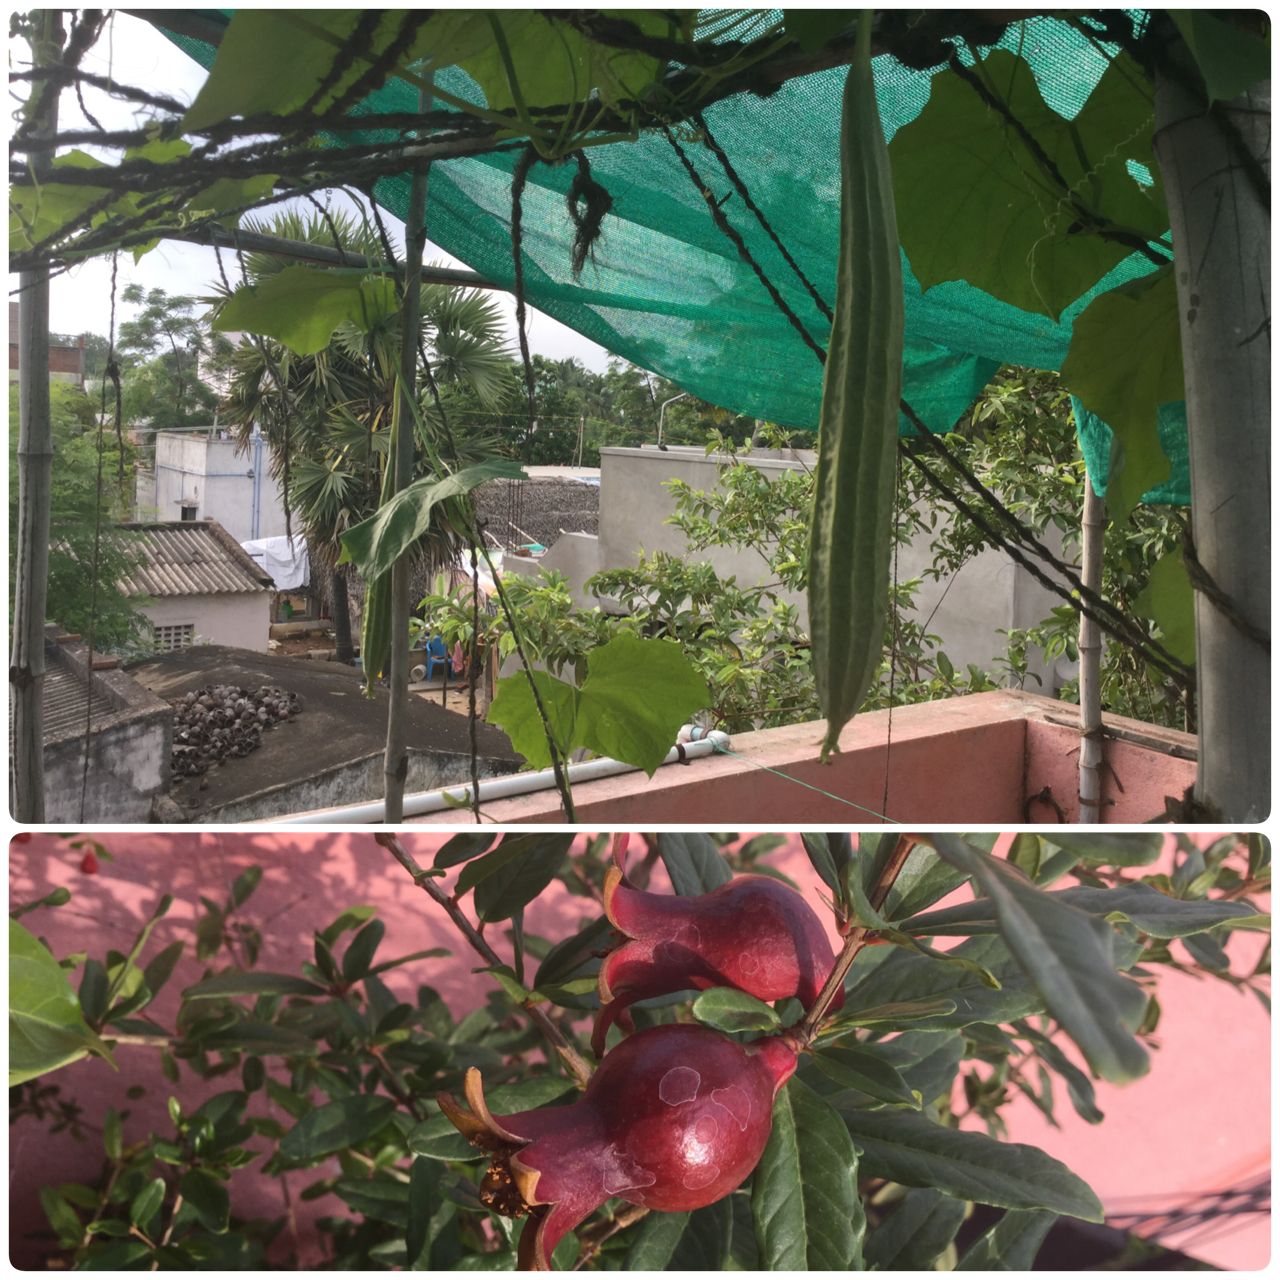 Terrace gardening september 2015 first ridge gourd pomegranate of the season solutioingenieria Image collections